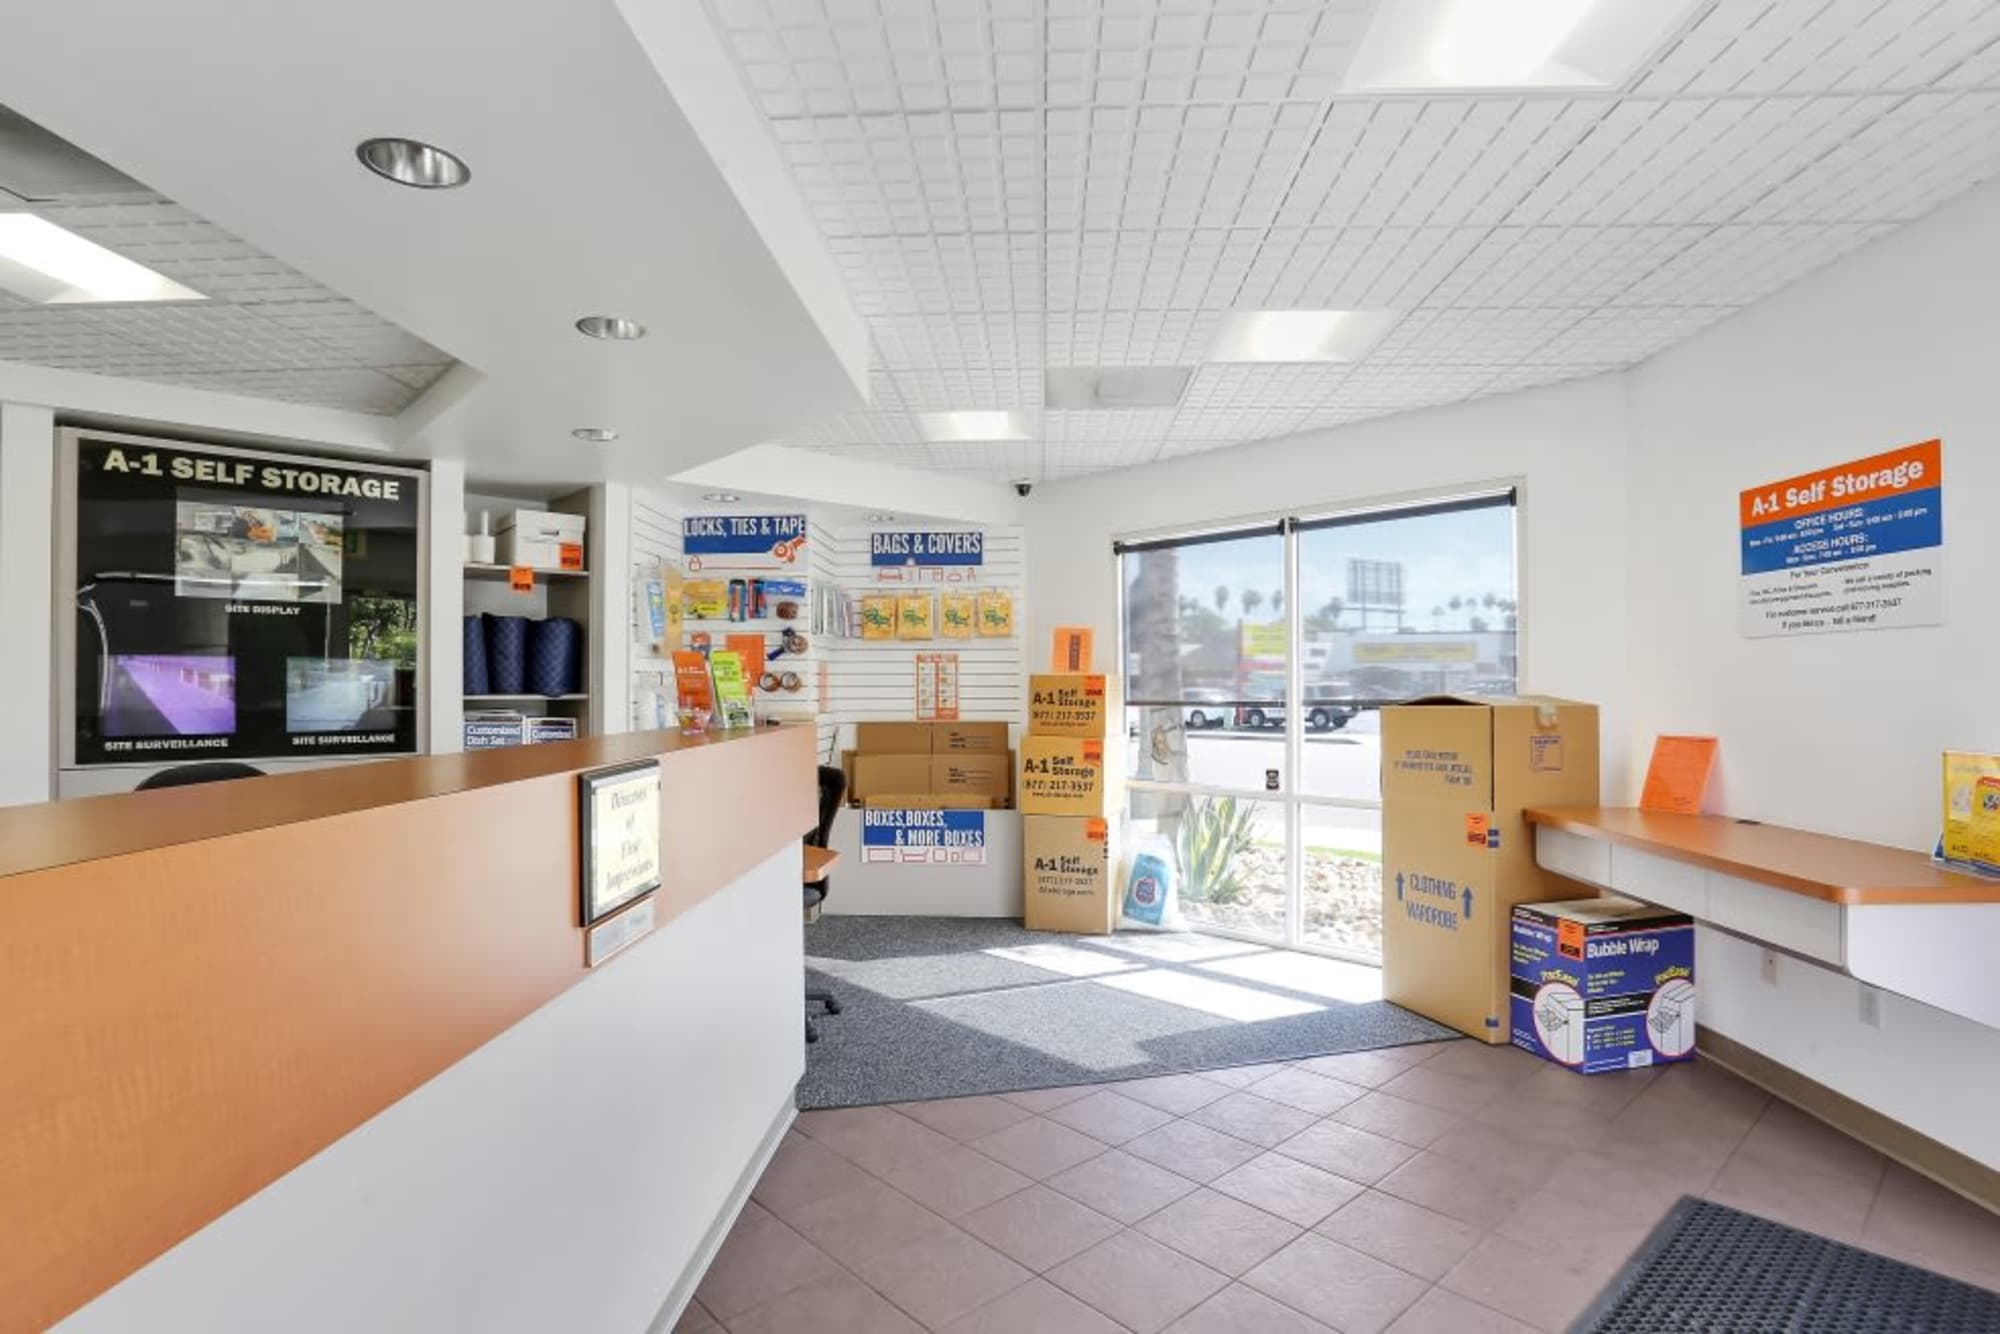 The leasing office and moving supplies at A-1 Self Storage in El Cajon, California